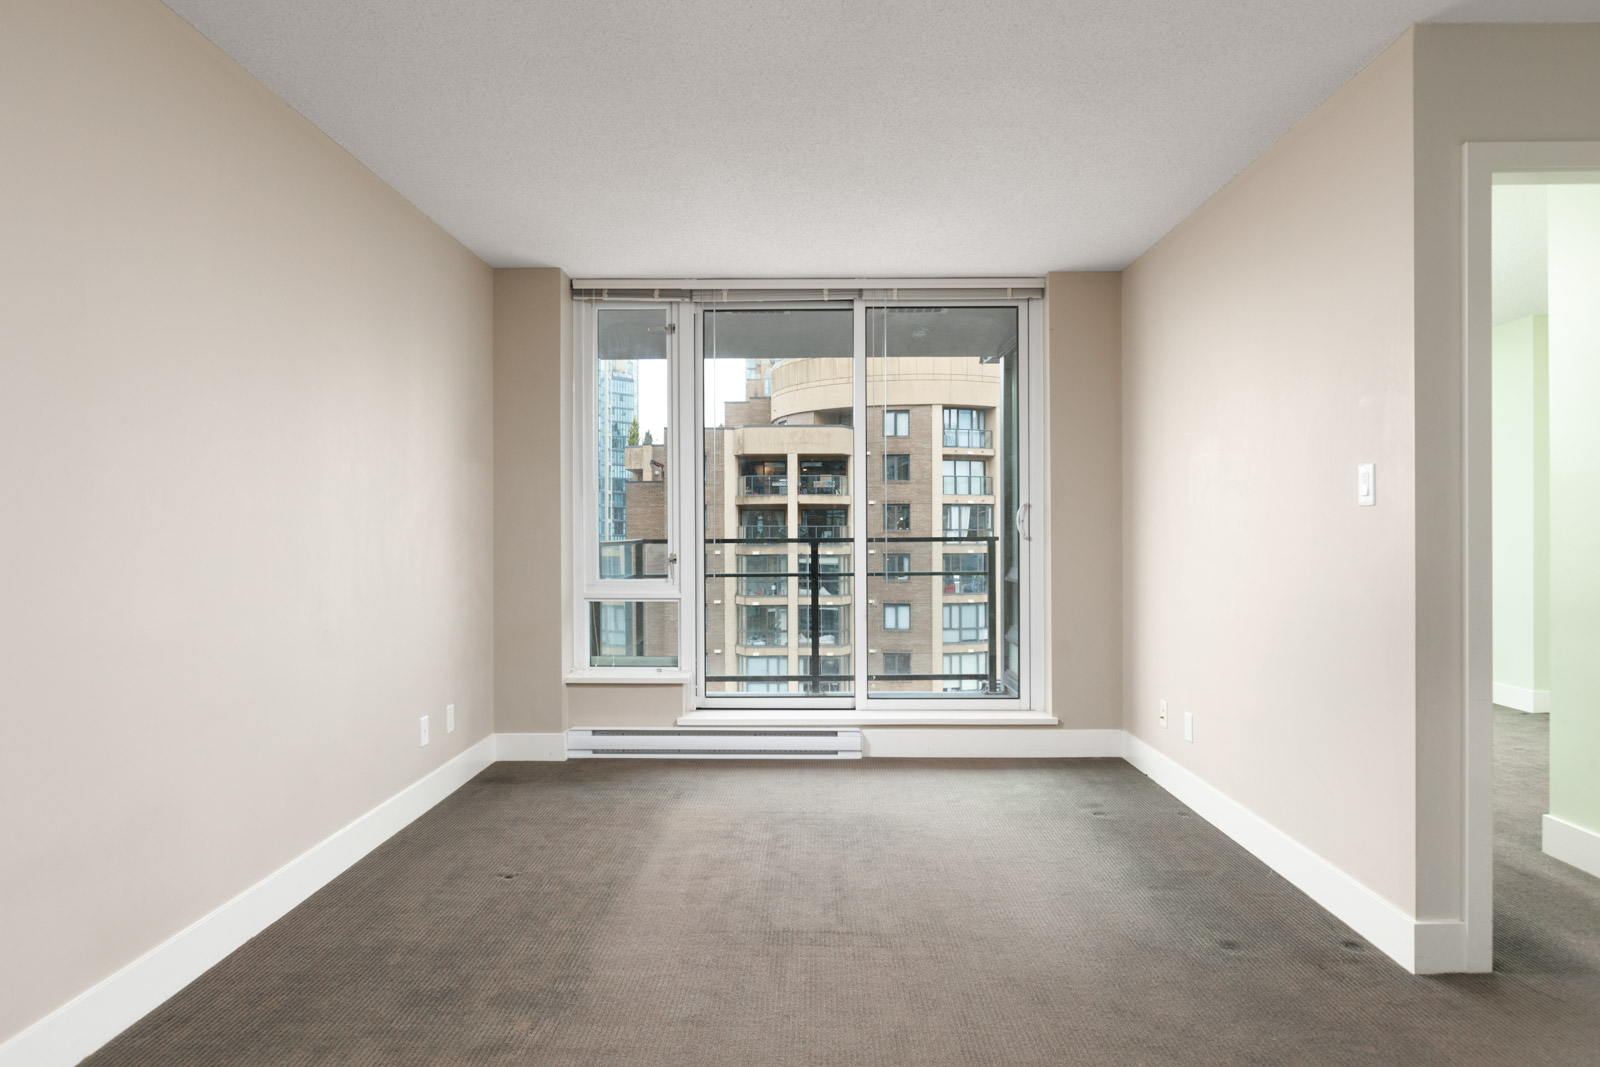 empty condo living room with hardwood floors looking out floor to ceiling windows to next condo building